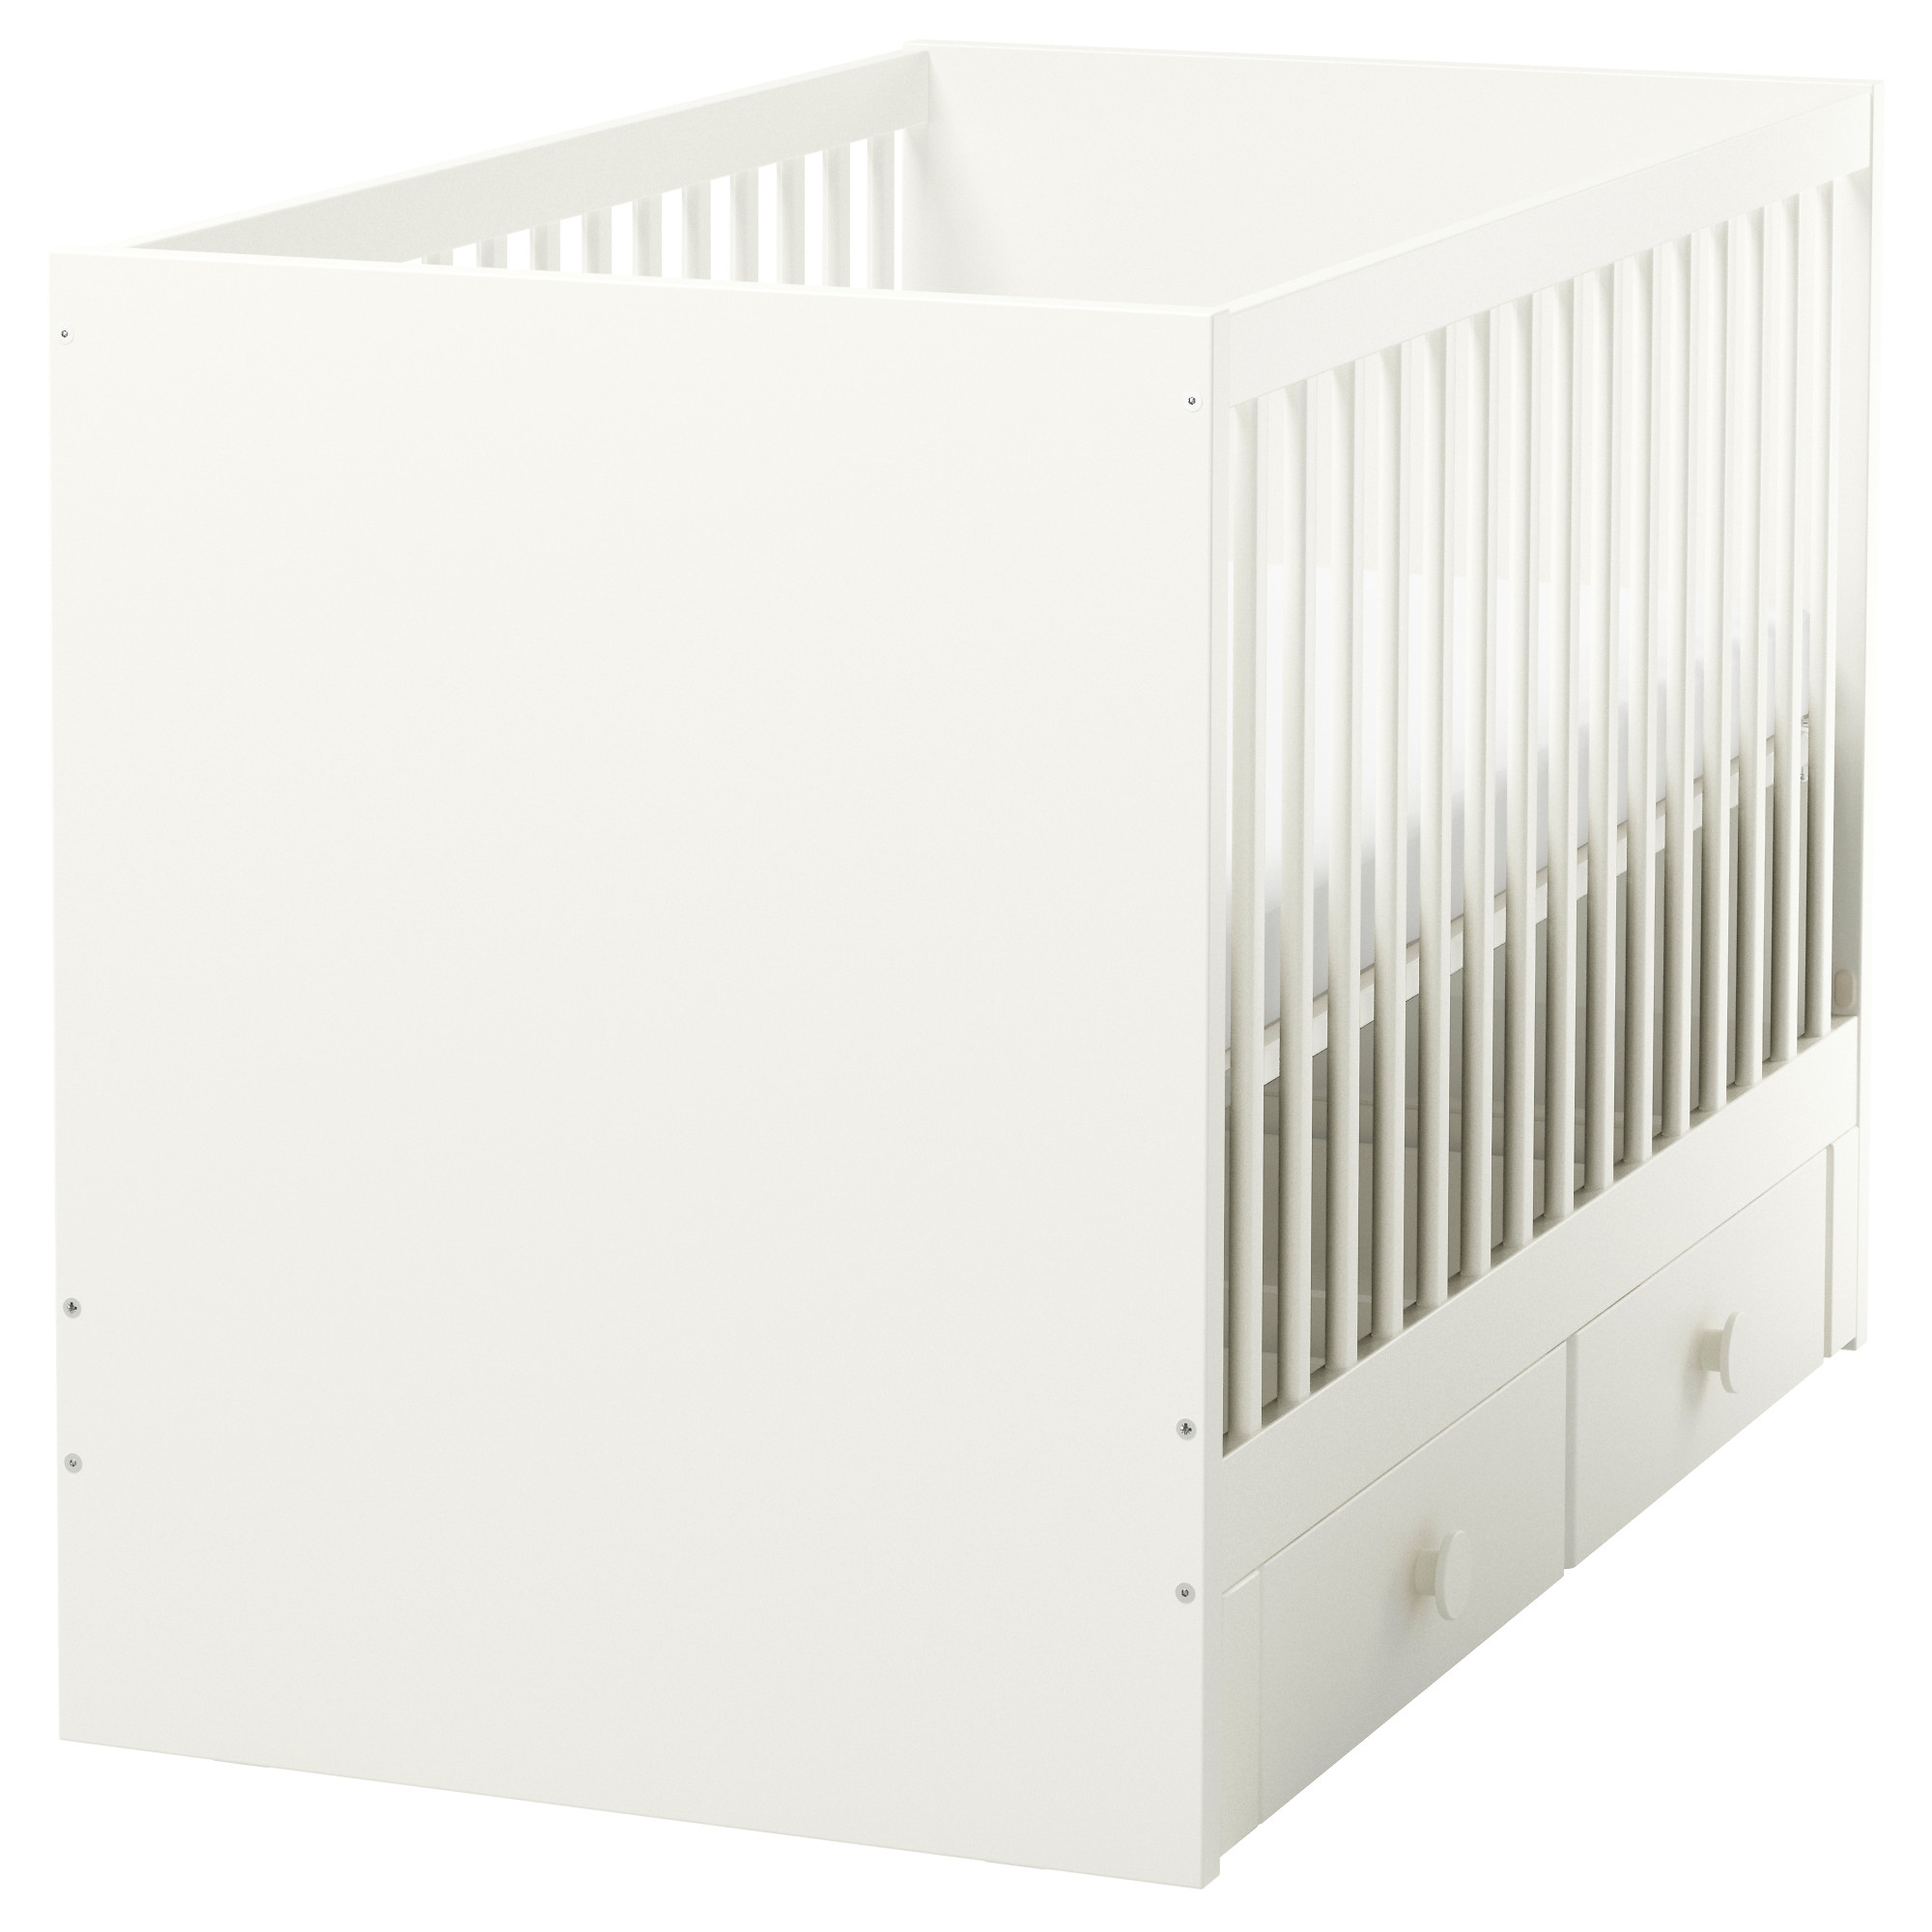 Crib heights for babies - Stuva F Lja Crib With Drawers White Length 54 3 4 Width